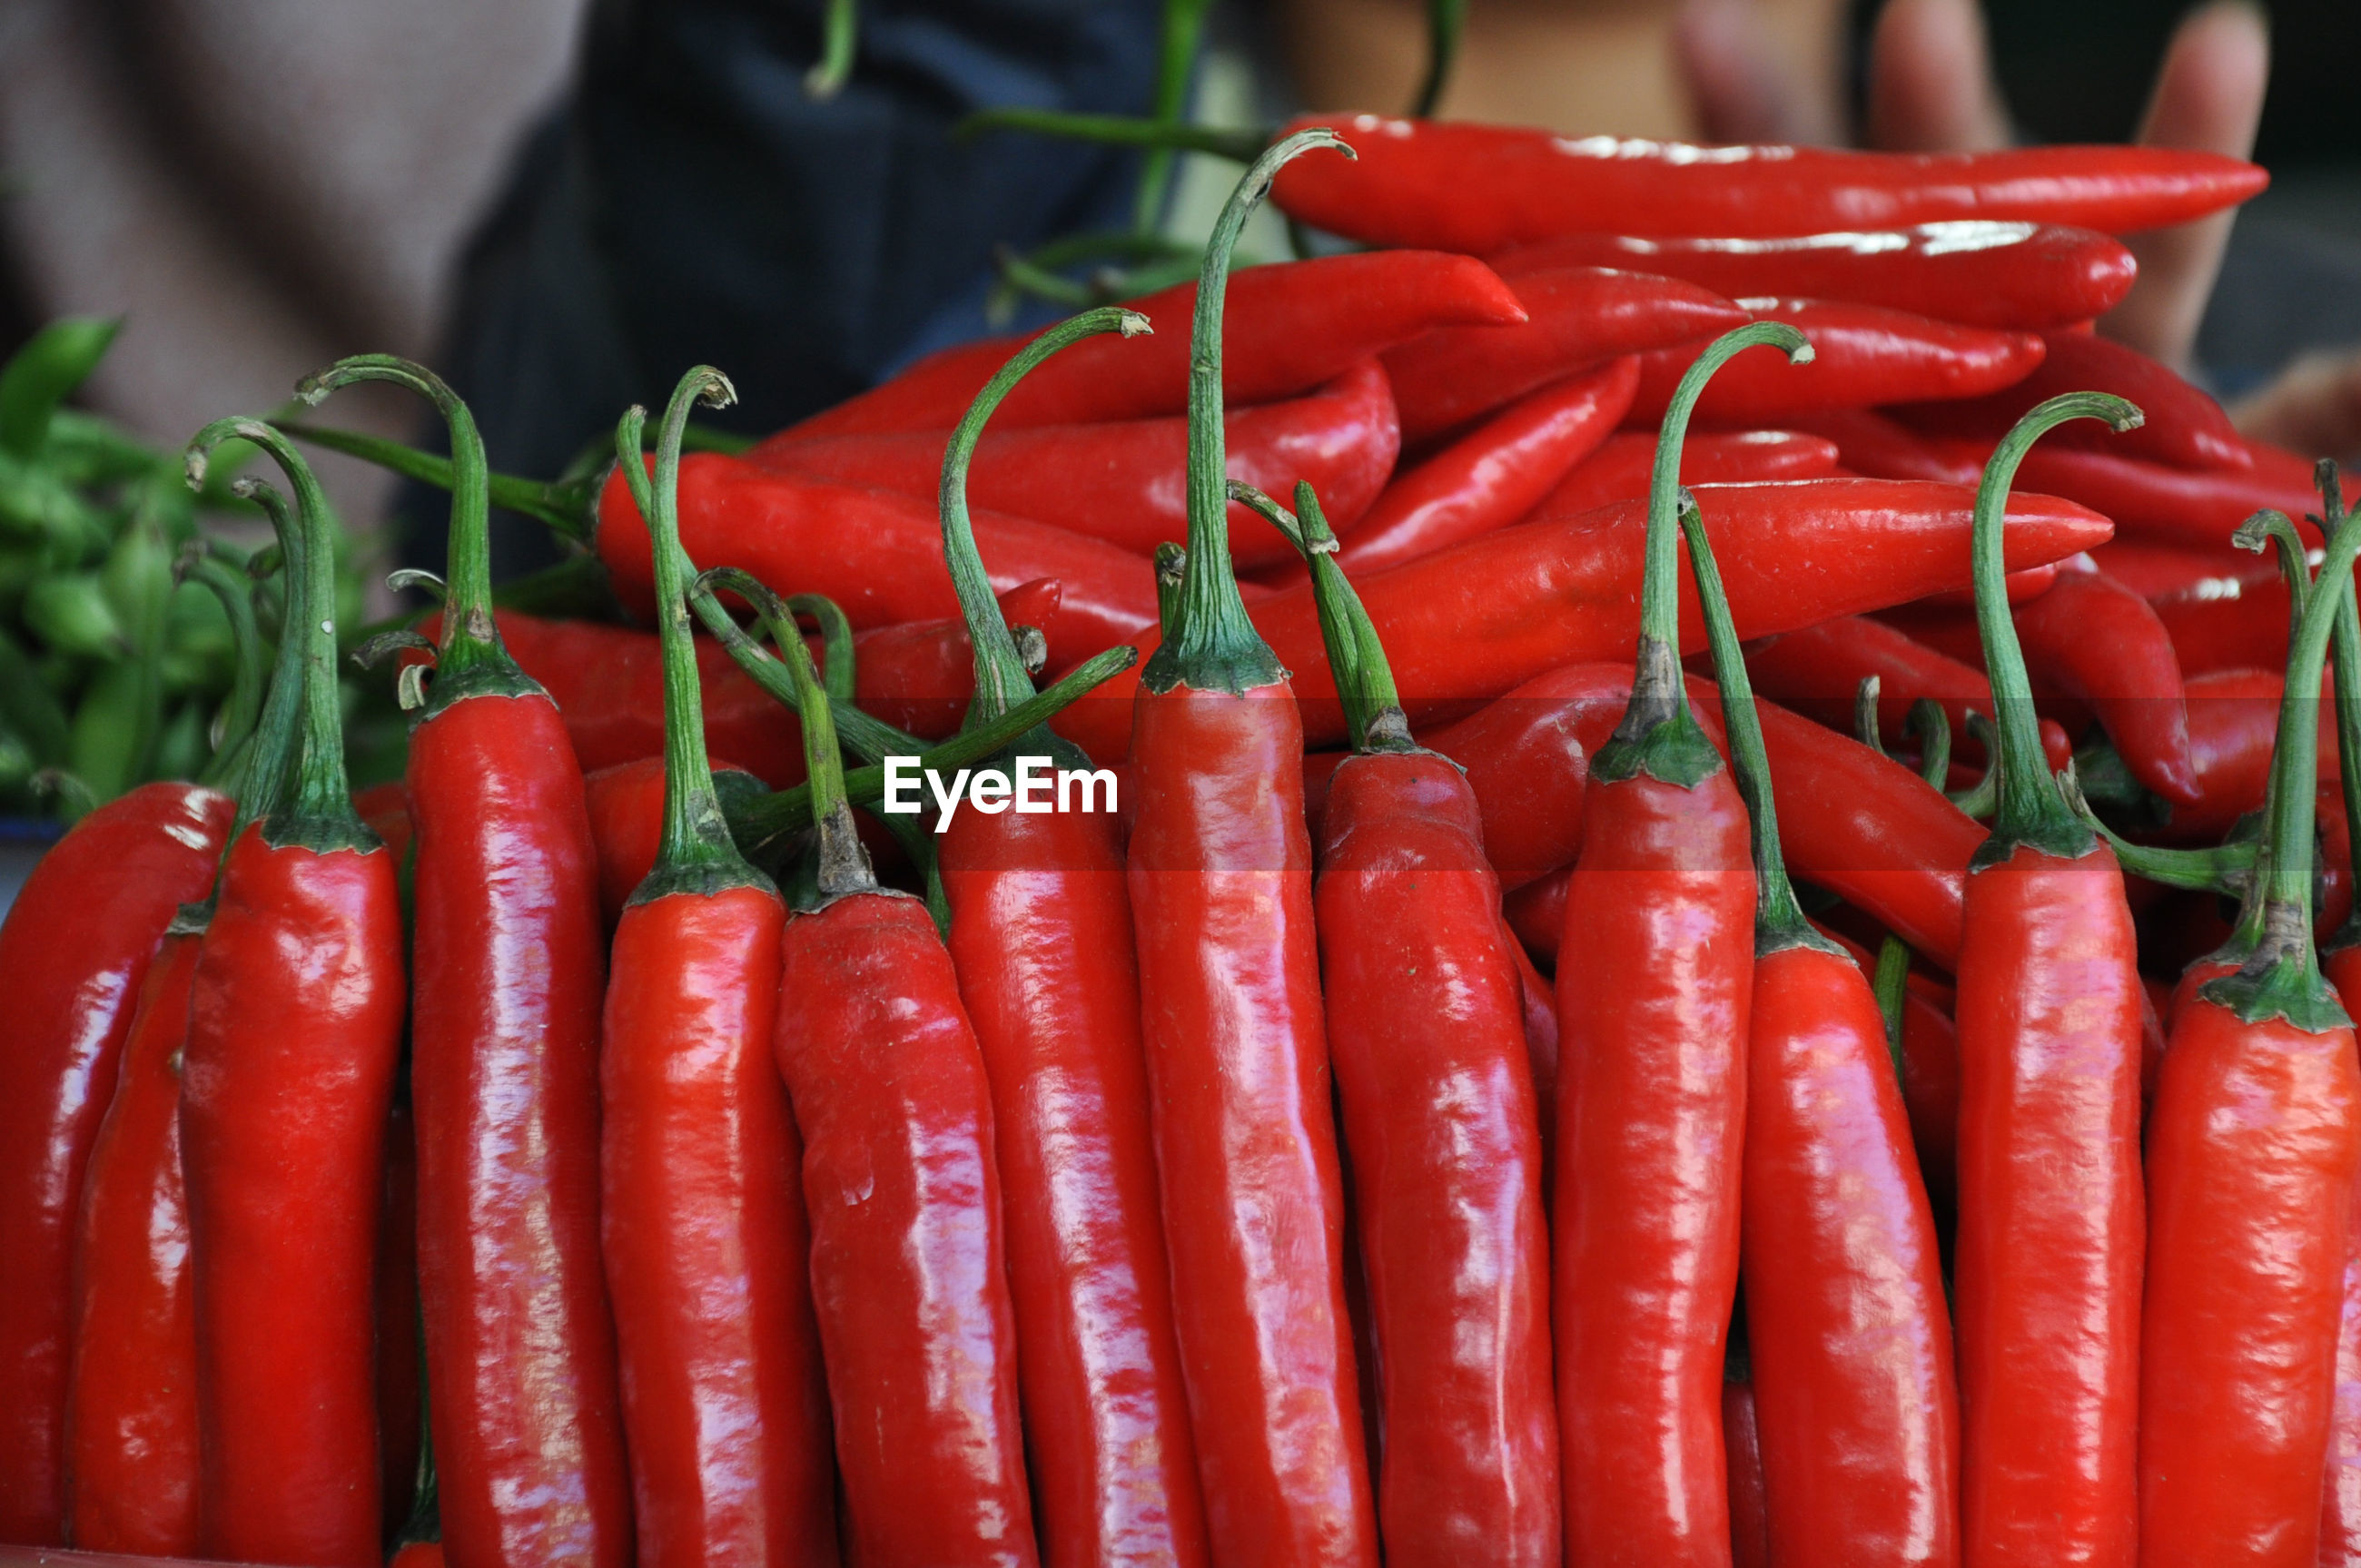 CLOSE-UP OF RED CHILI PEPPERS AT MARKET STALL